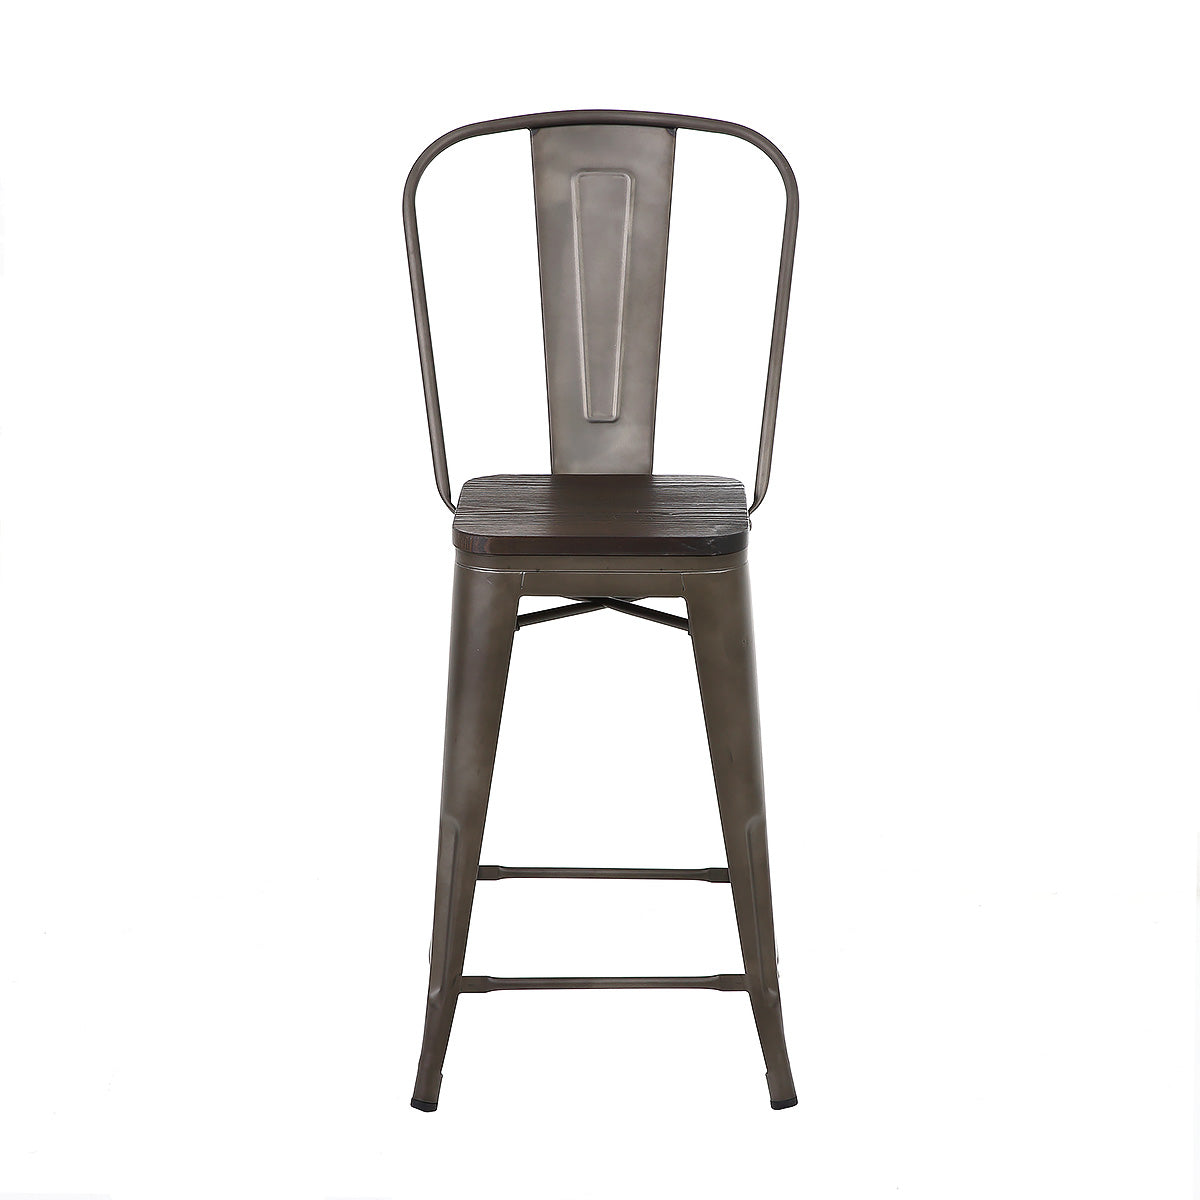 Brilliant 24 Inch Bronze Metal Counter Stools With Wooden Seat High Back Set Of 4 Caraccident5 Cool Chair Designs And Ideas Caraccident5Info